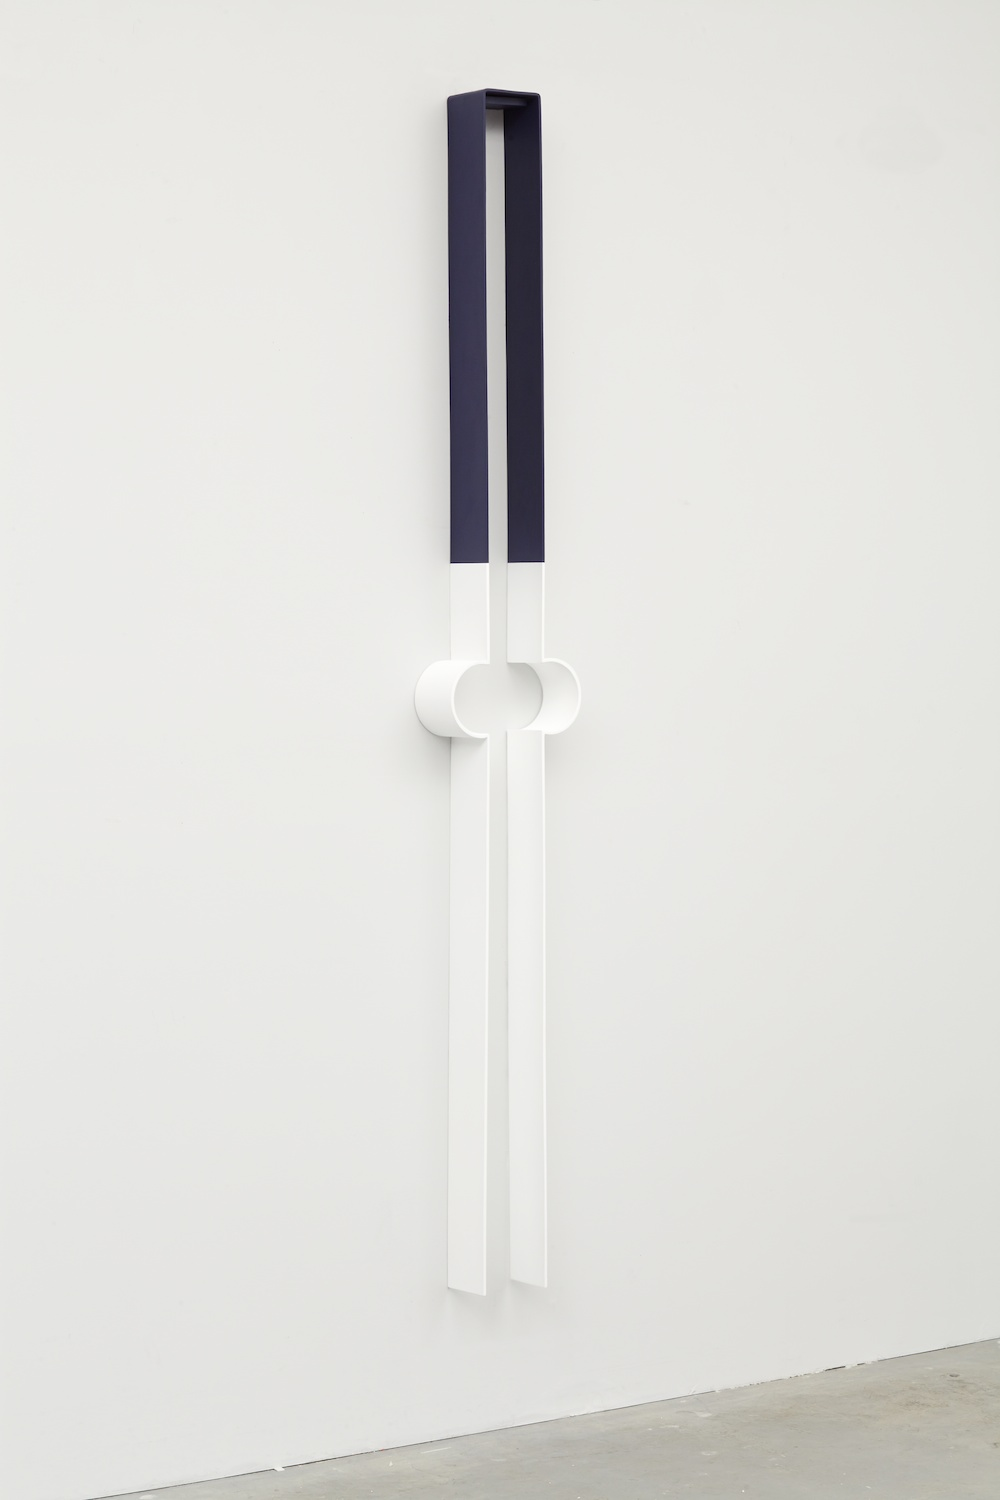 "Lisa Williamson Bump, Bob 2013 Acrylic on powder-coated steel 80"" x 14"" x 4"" LW120"